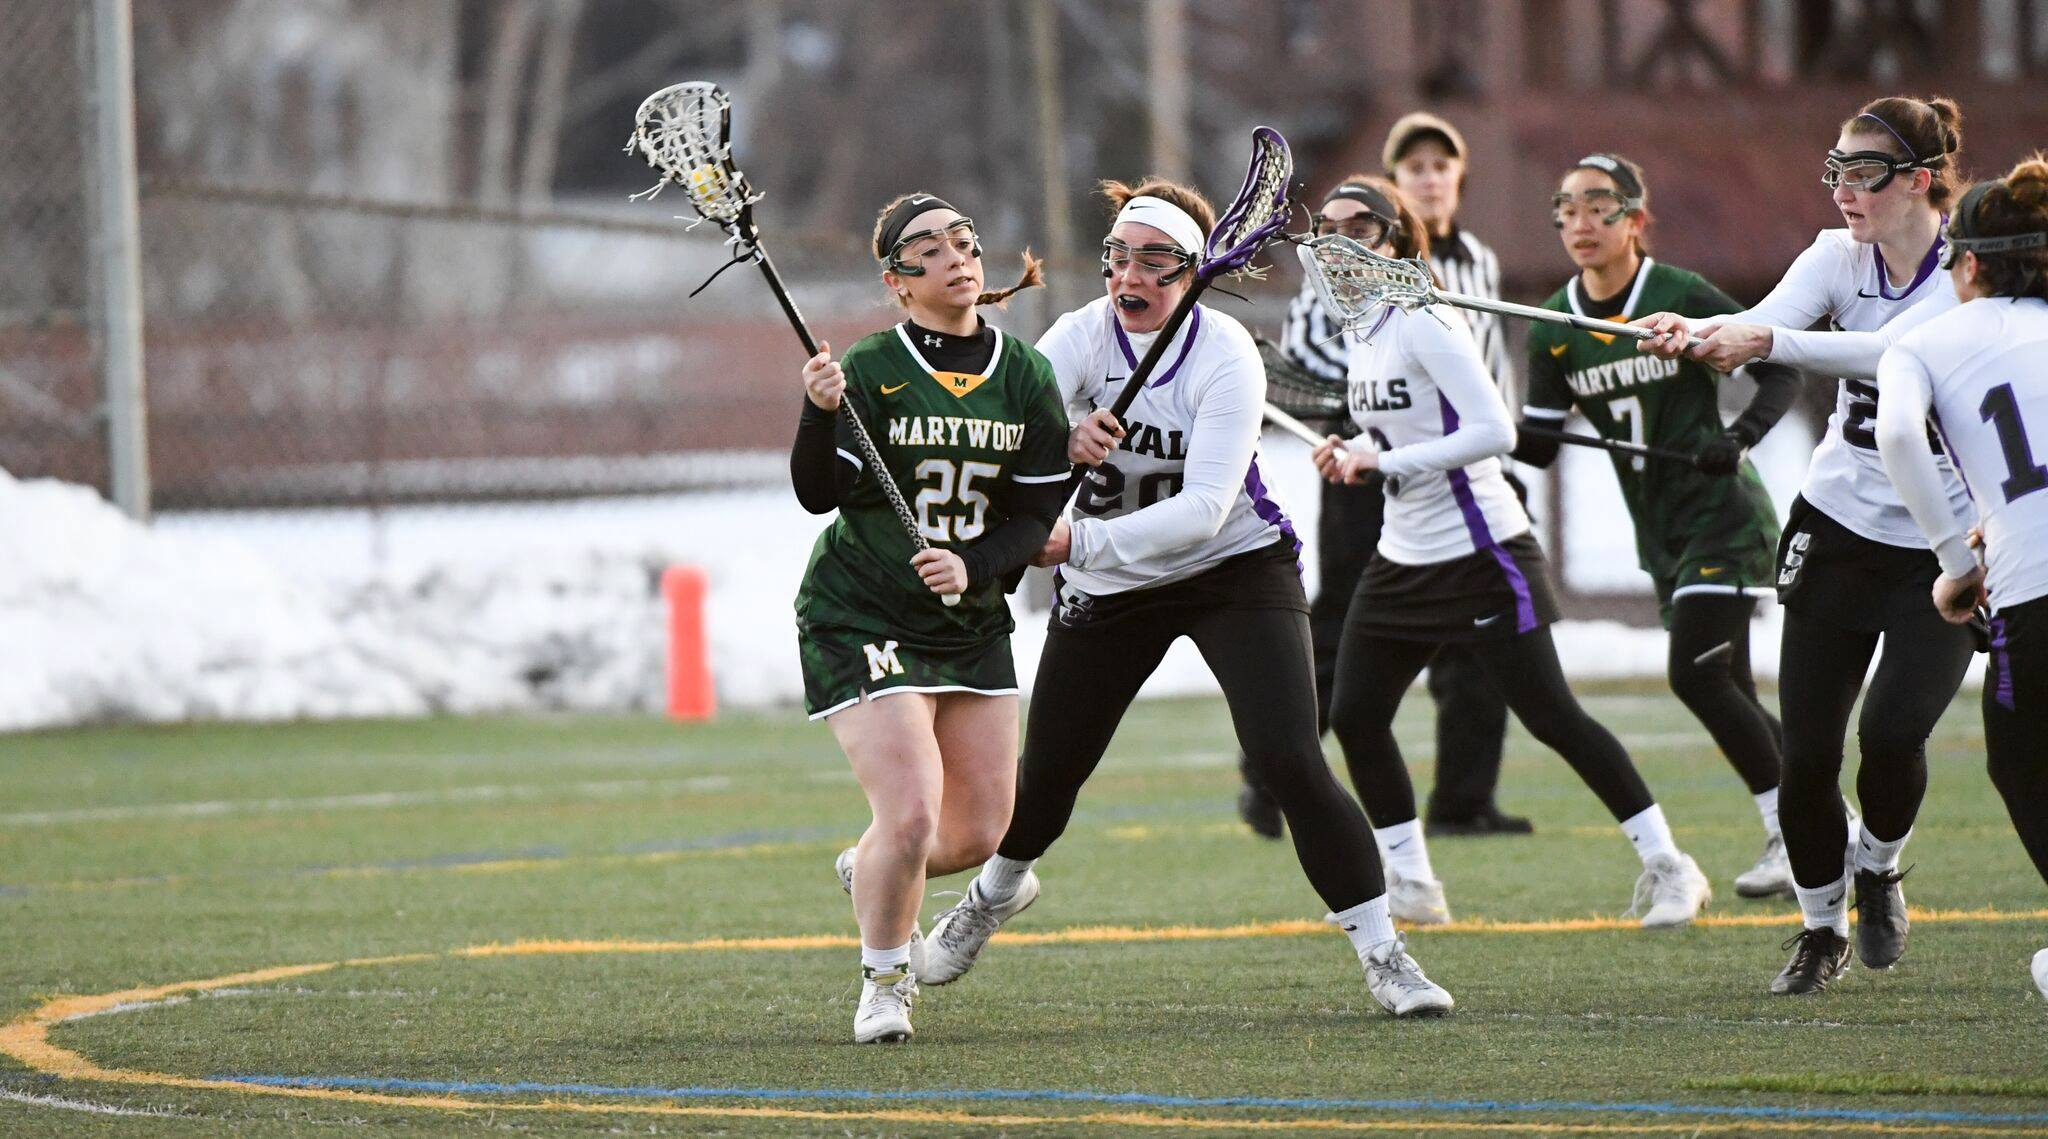 Sophomore attacker Ashley Valway became the ninth member of Marywood University's 100 Point Club with two goals. Photo courtesy of Marywood Athletics